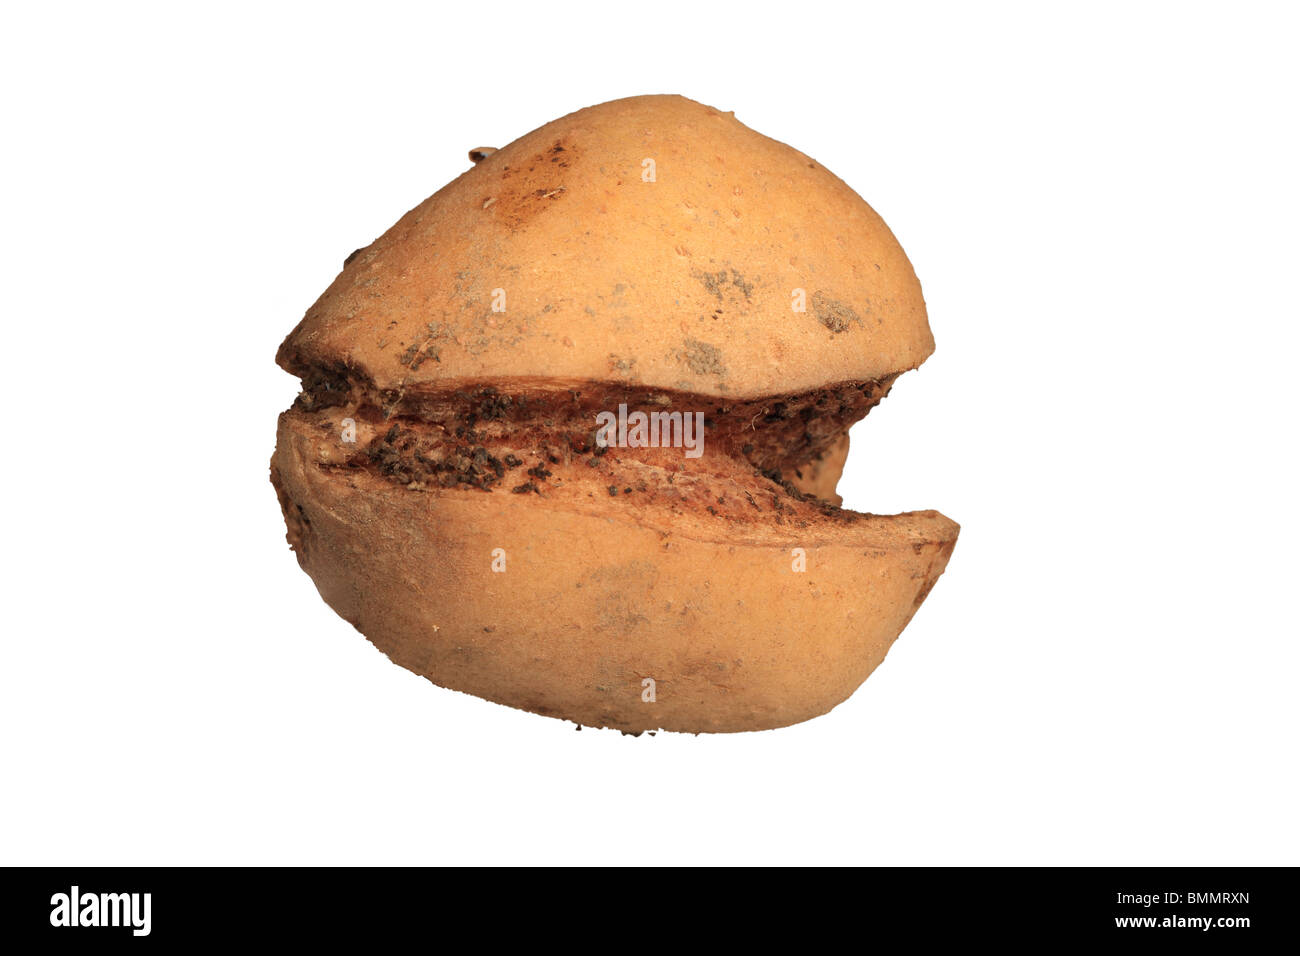 GROWTH CRACK IN POTATO CAUSED BY DRY PERIOD FOLLOWING RAPID GROWTH - Stock Image